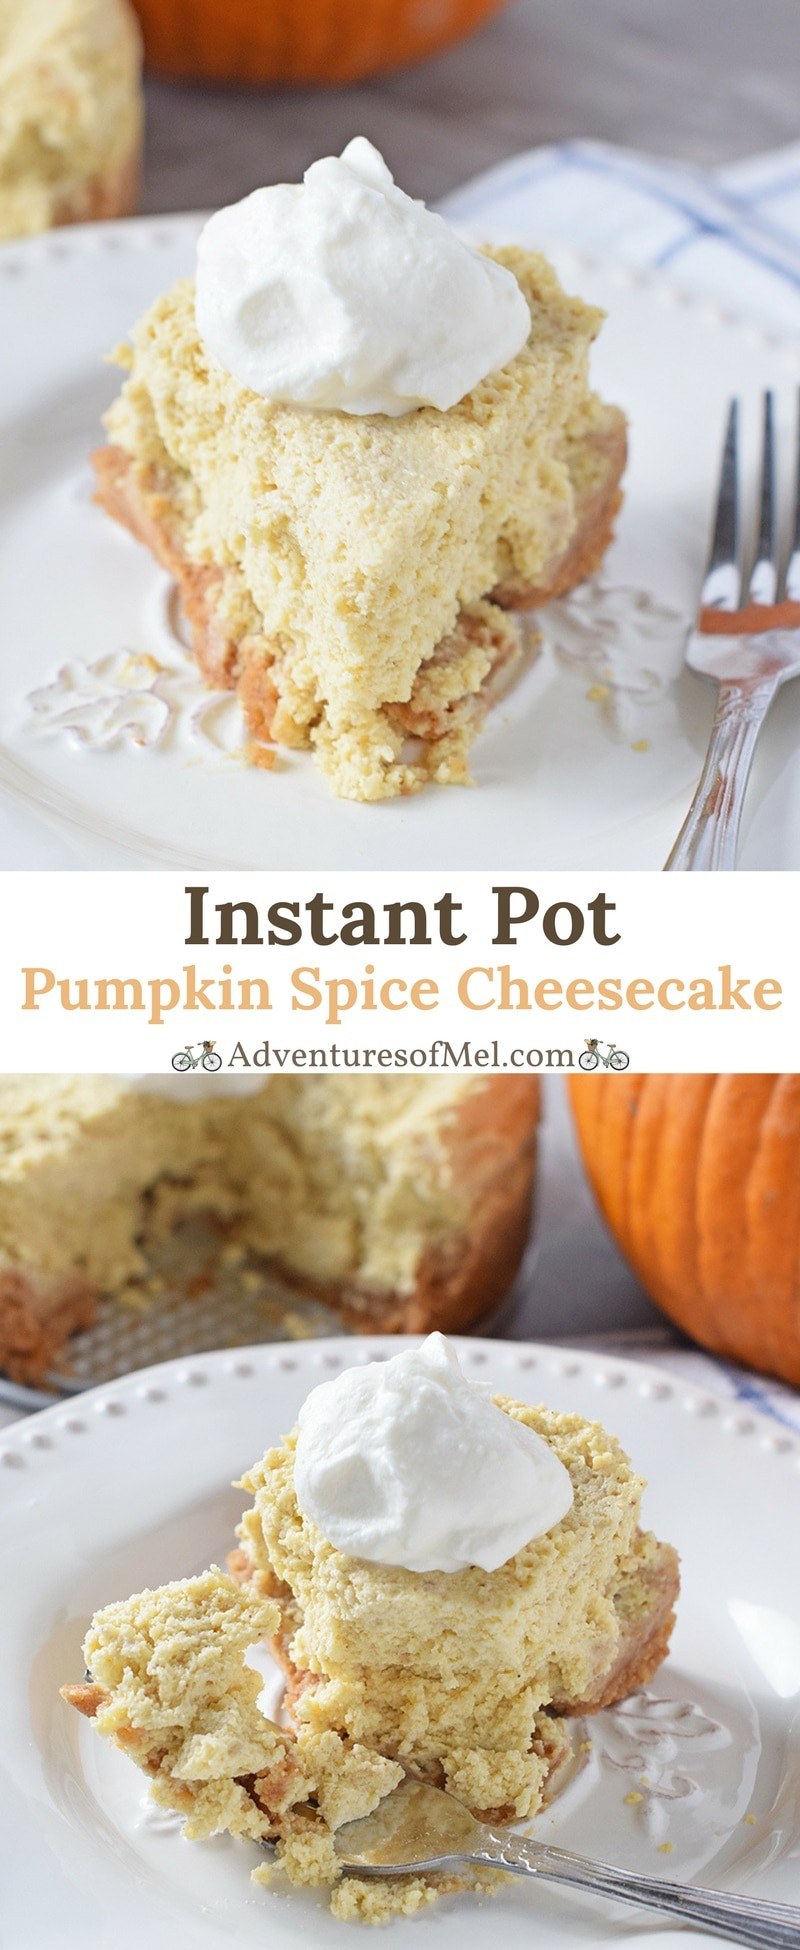 Pumpkin Spice Cheesecake, made in the Instant Pot. Easy fall and holiday dessert recipe with a graham cracker crust, full of delicious fall flavors.